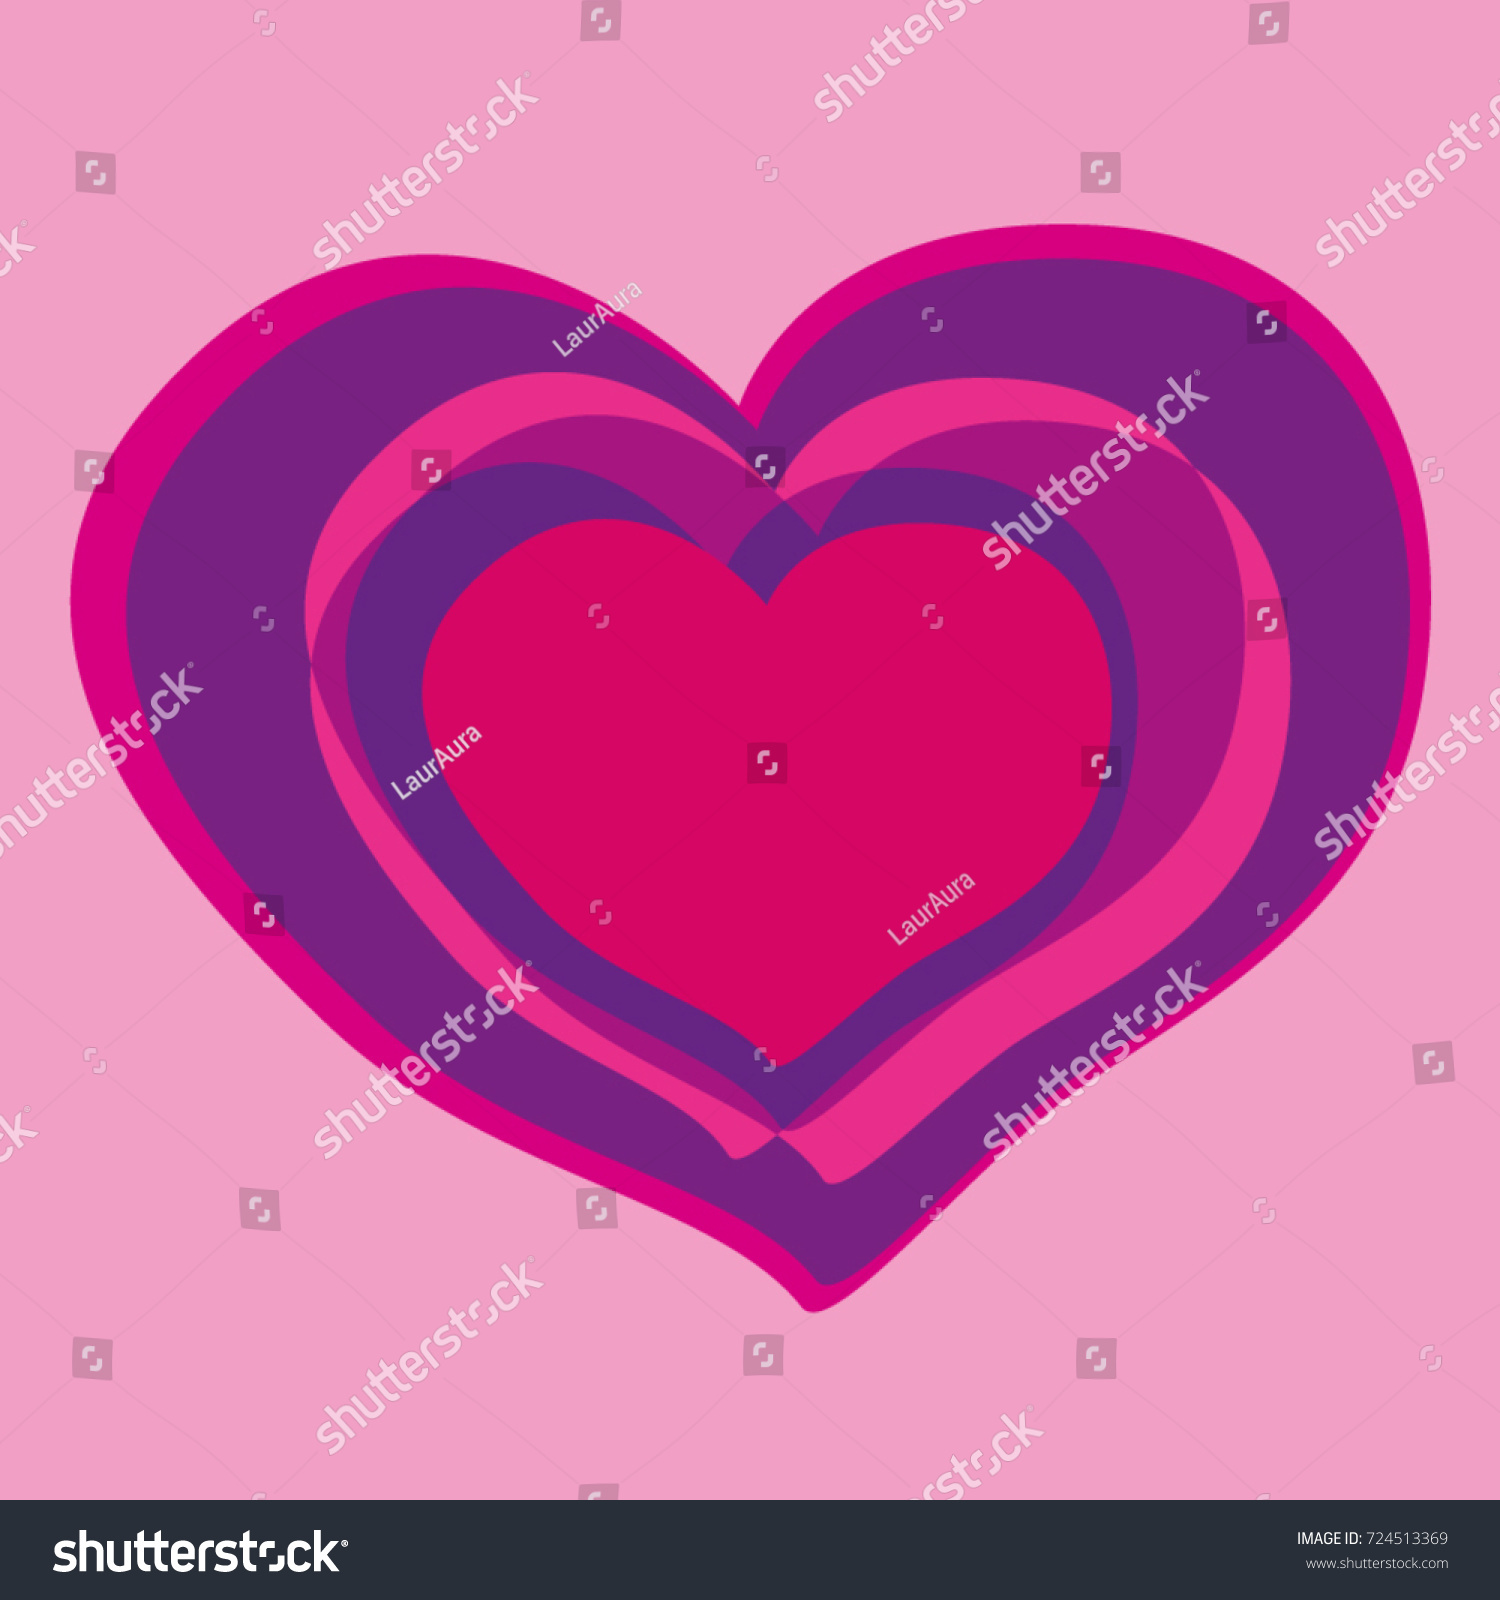 Illustrated heart pink color symbol love stock vector 724513369 illustrated heart pink color symbol of love biocorpaavc Images